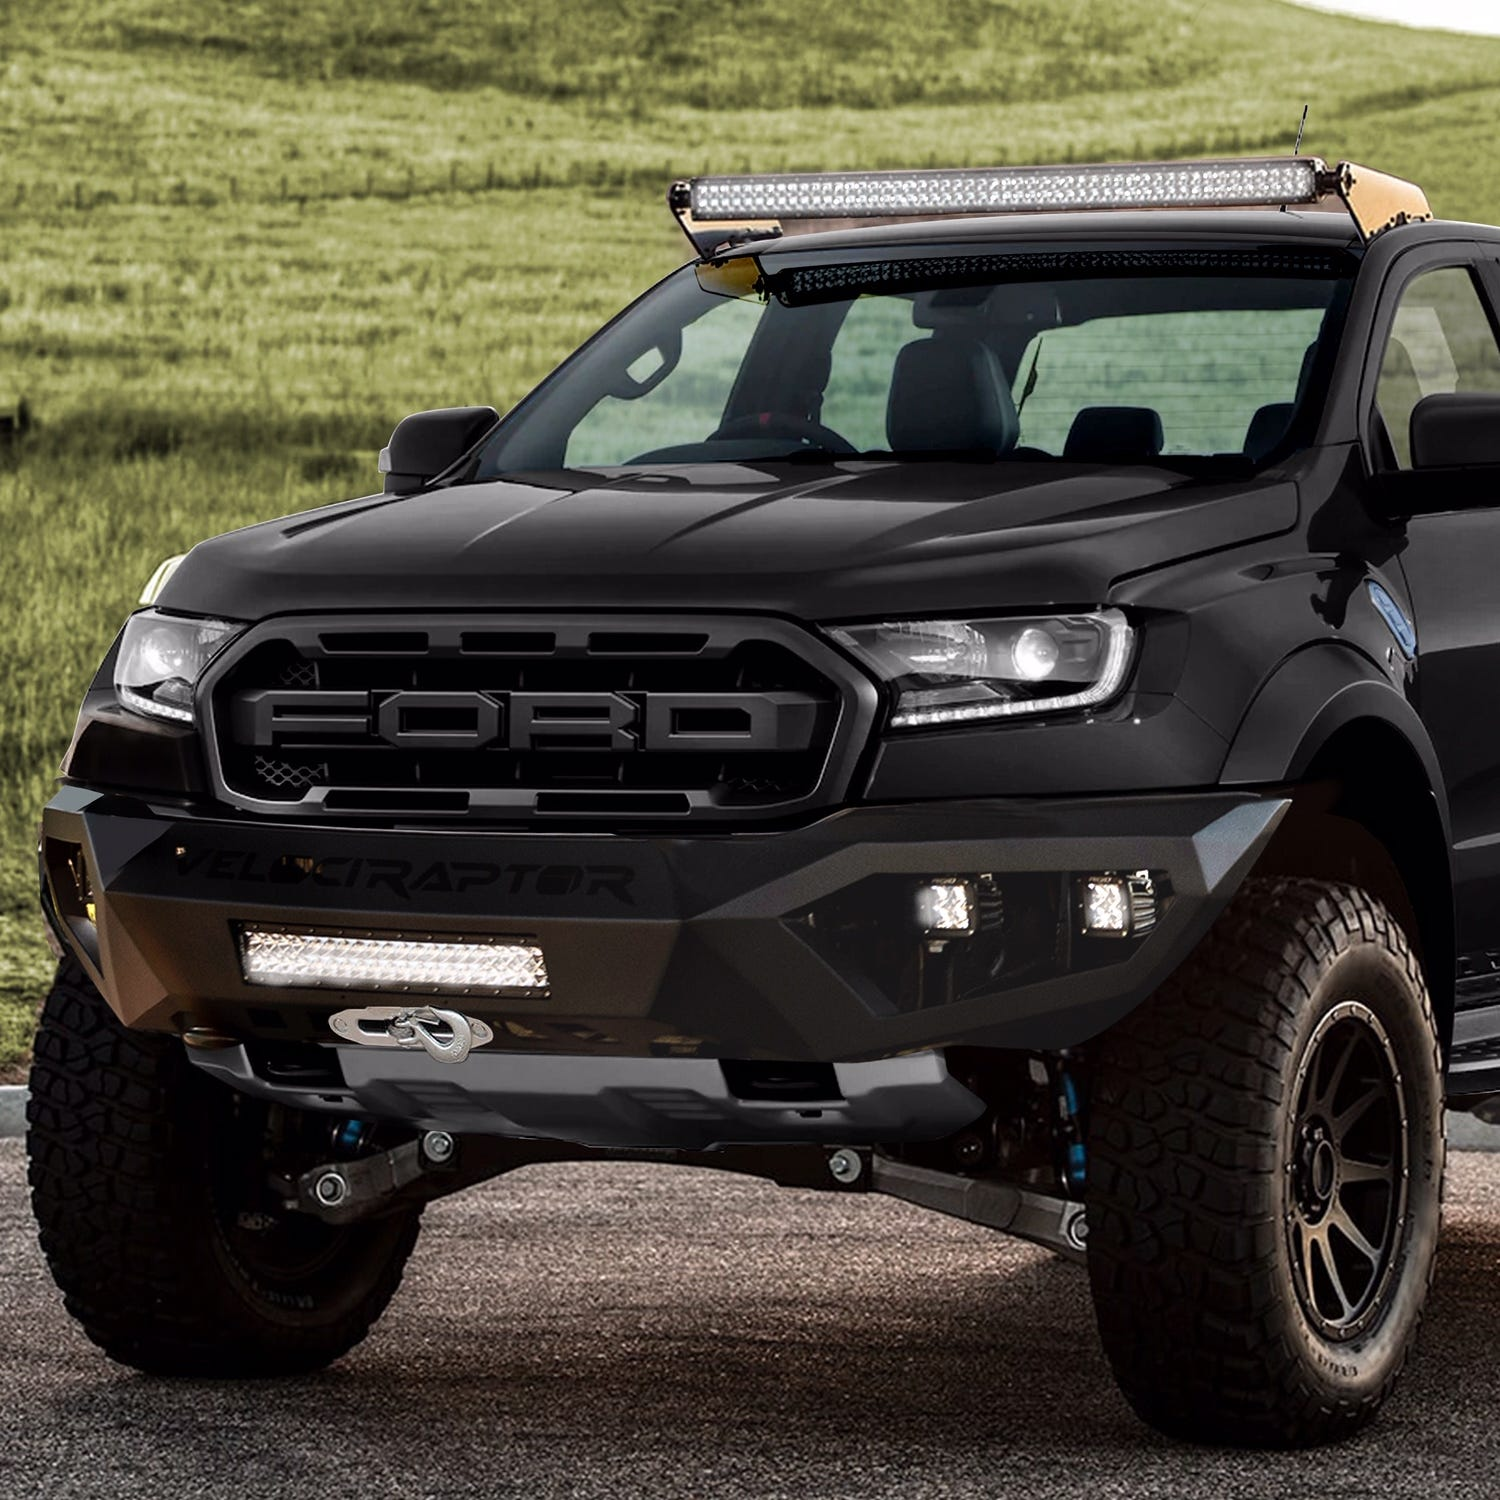 Only 500 2019 Ranger VelociRaptor pickups will be built in US: How to get one